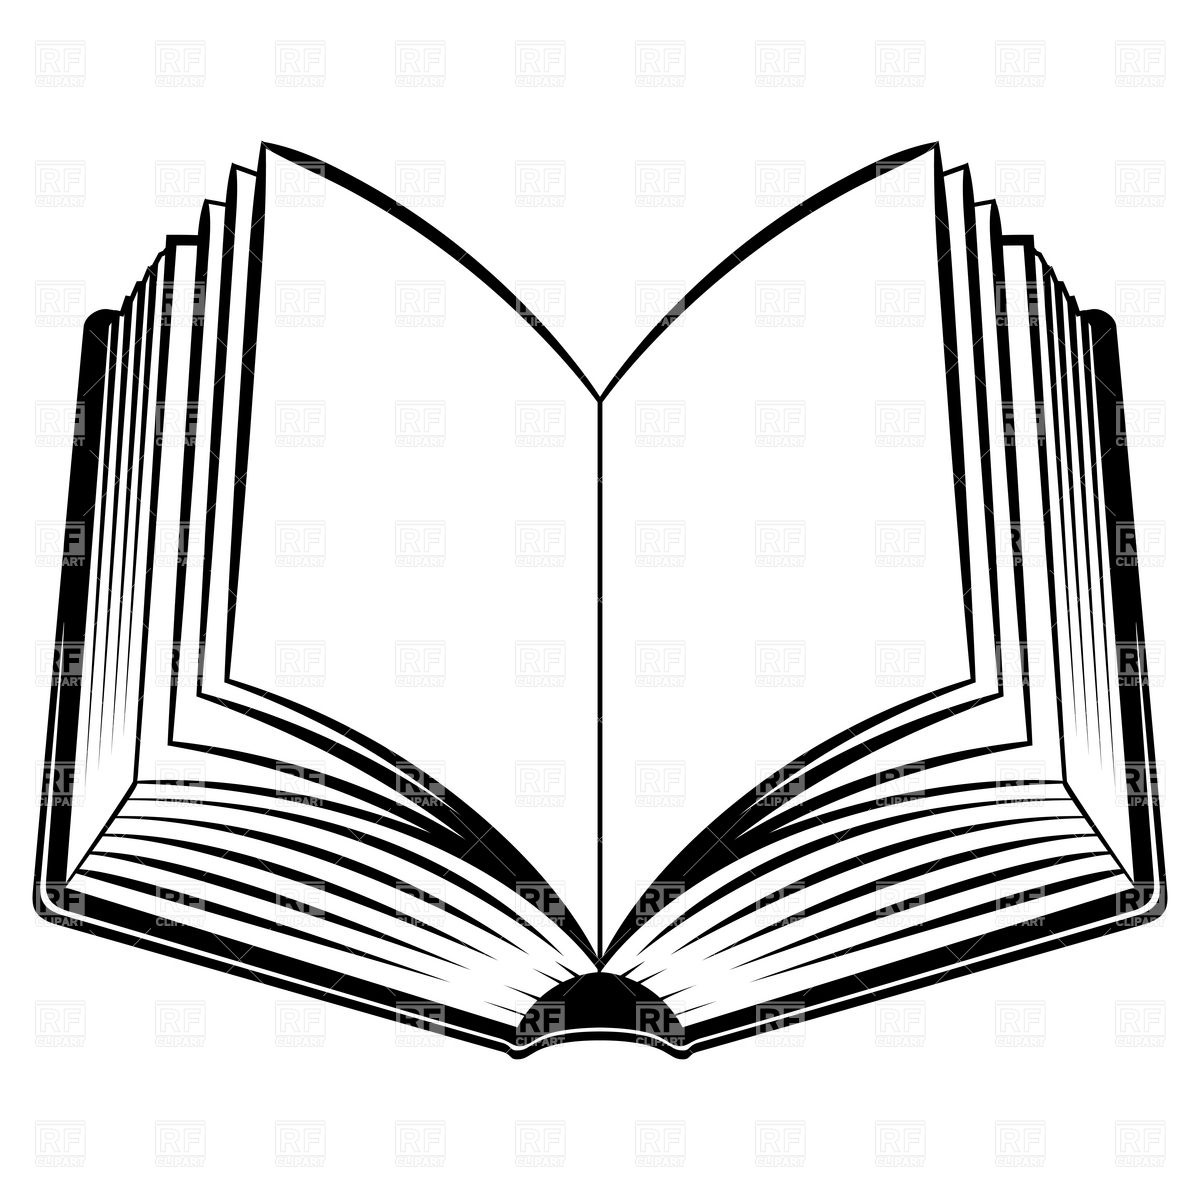 Open Book Silhouette at GetDrawings.com | Free for personal use Open ...